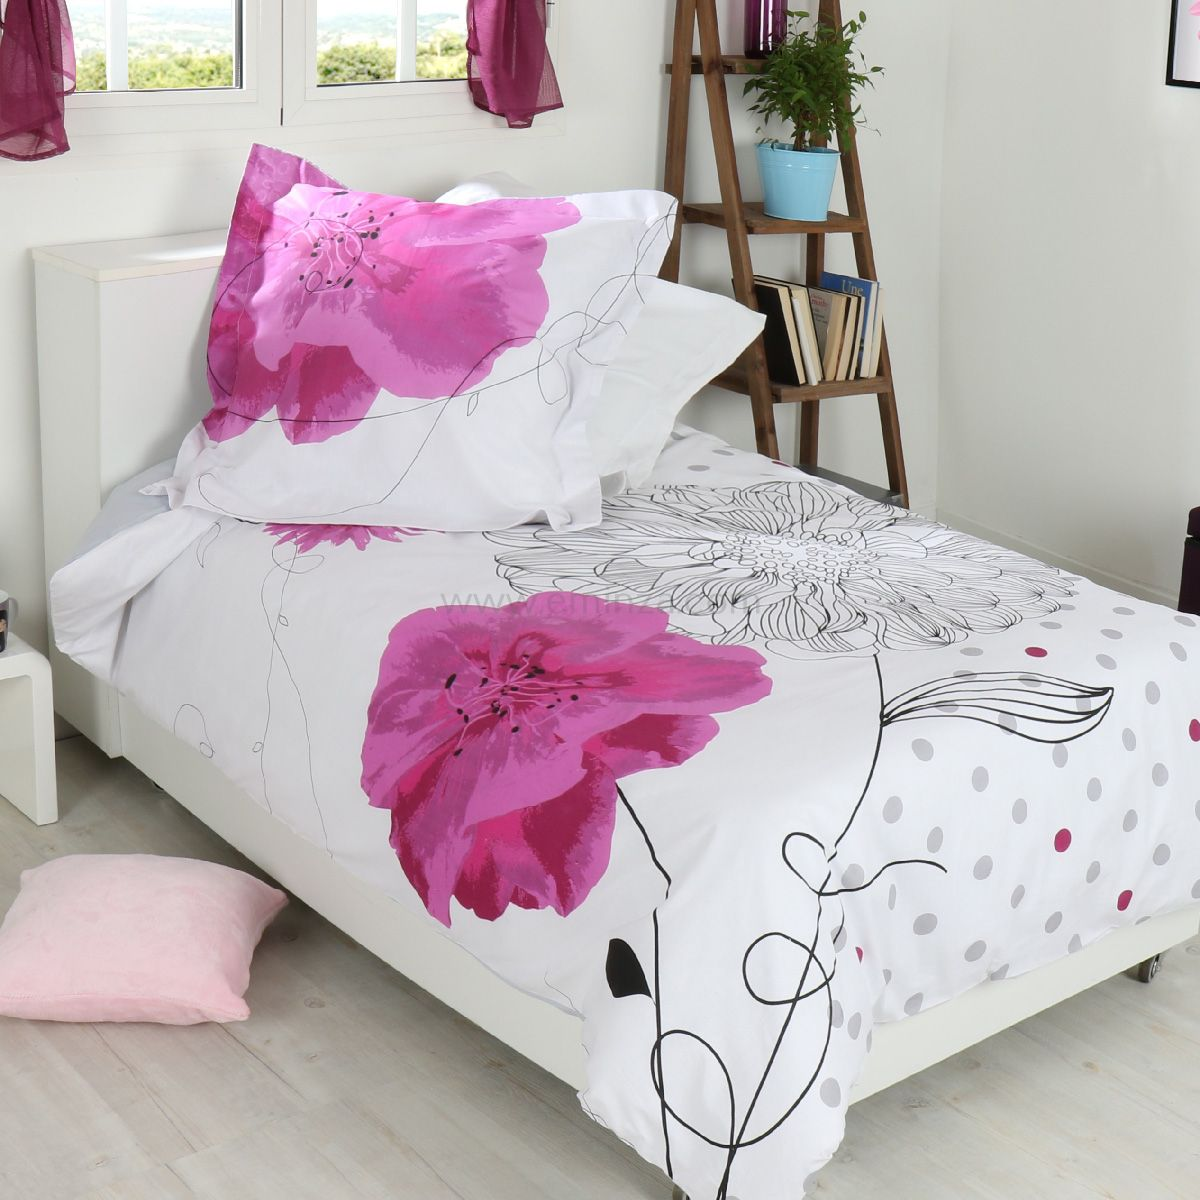 housse de couette et une taie 140 cm florela housse de couette eminza. Black Bedroom Furniture Sets. Home Design Ideas